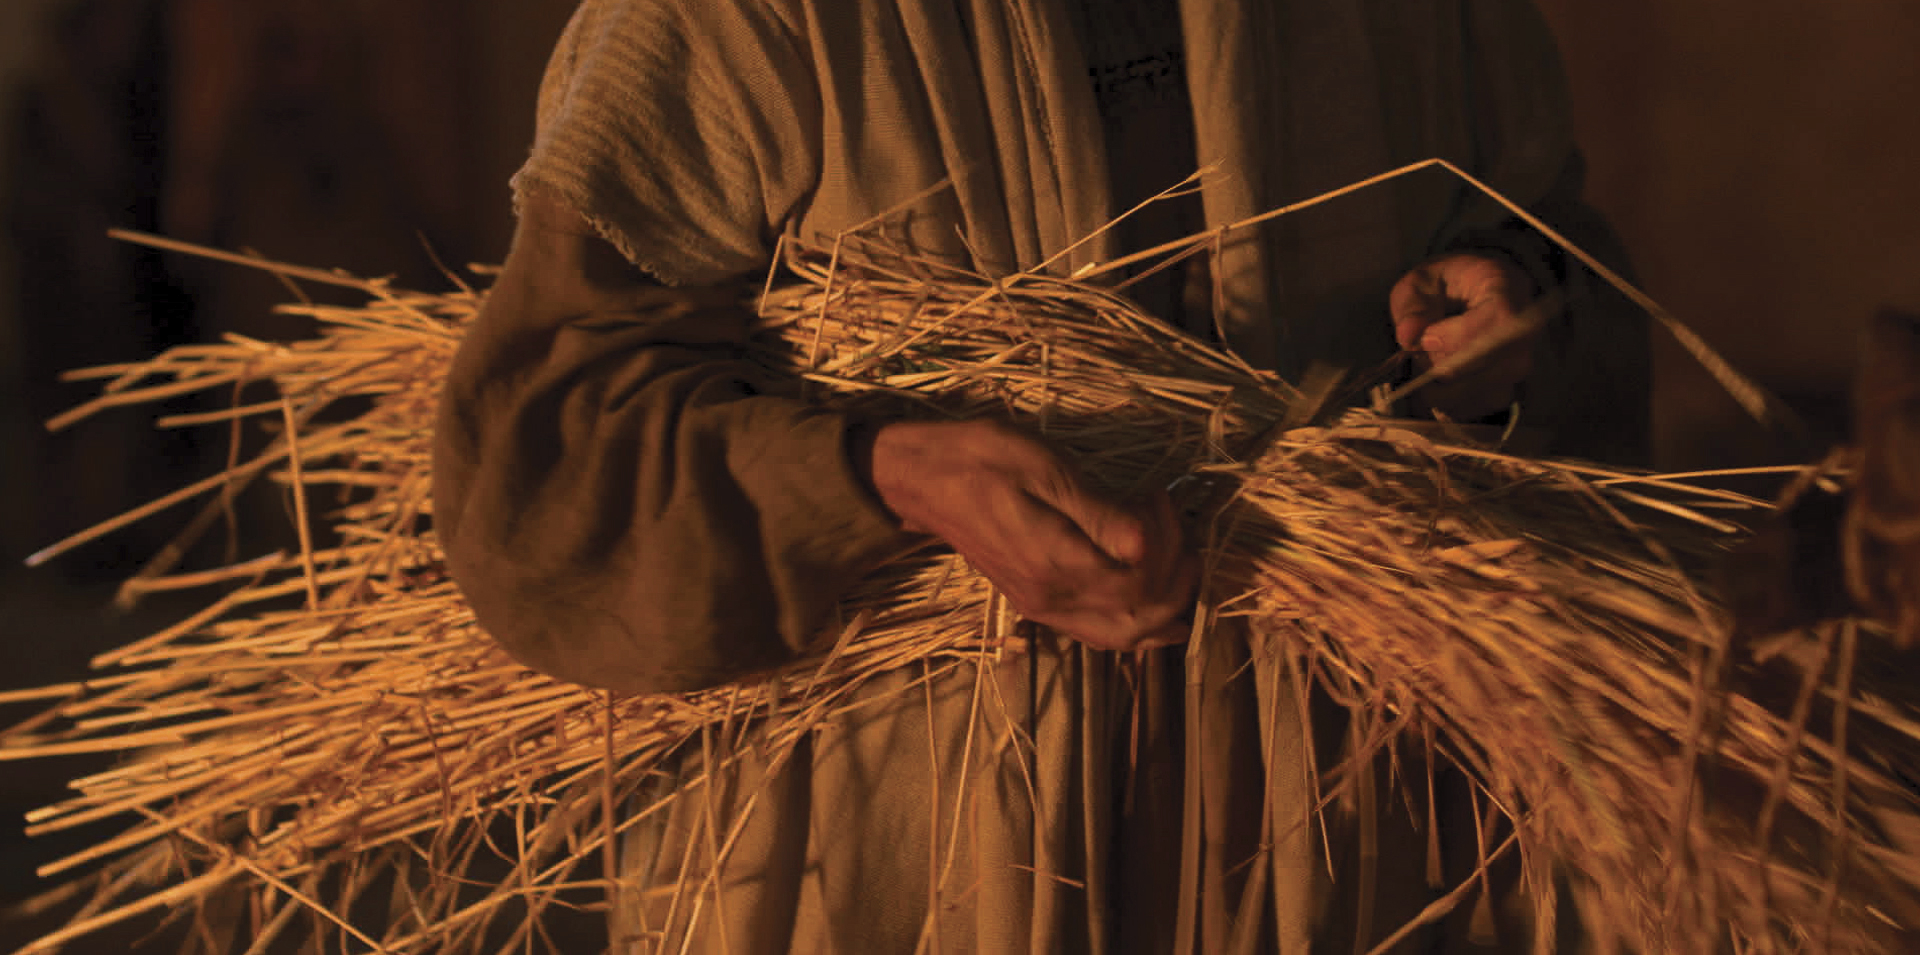 Jesus tells the parable of the wheat and tares.